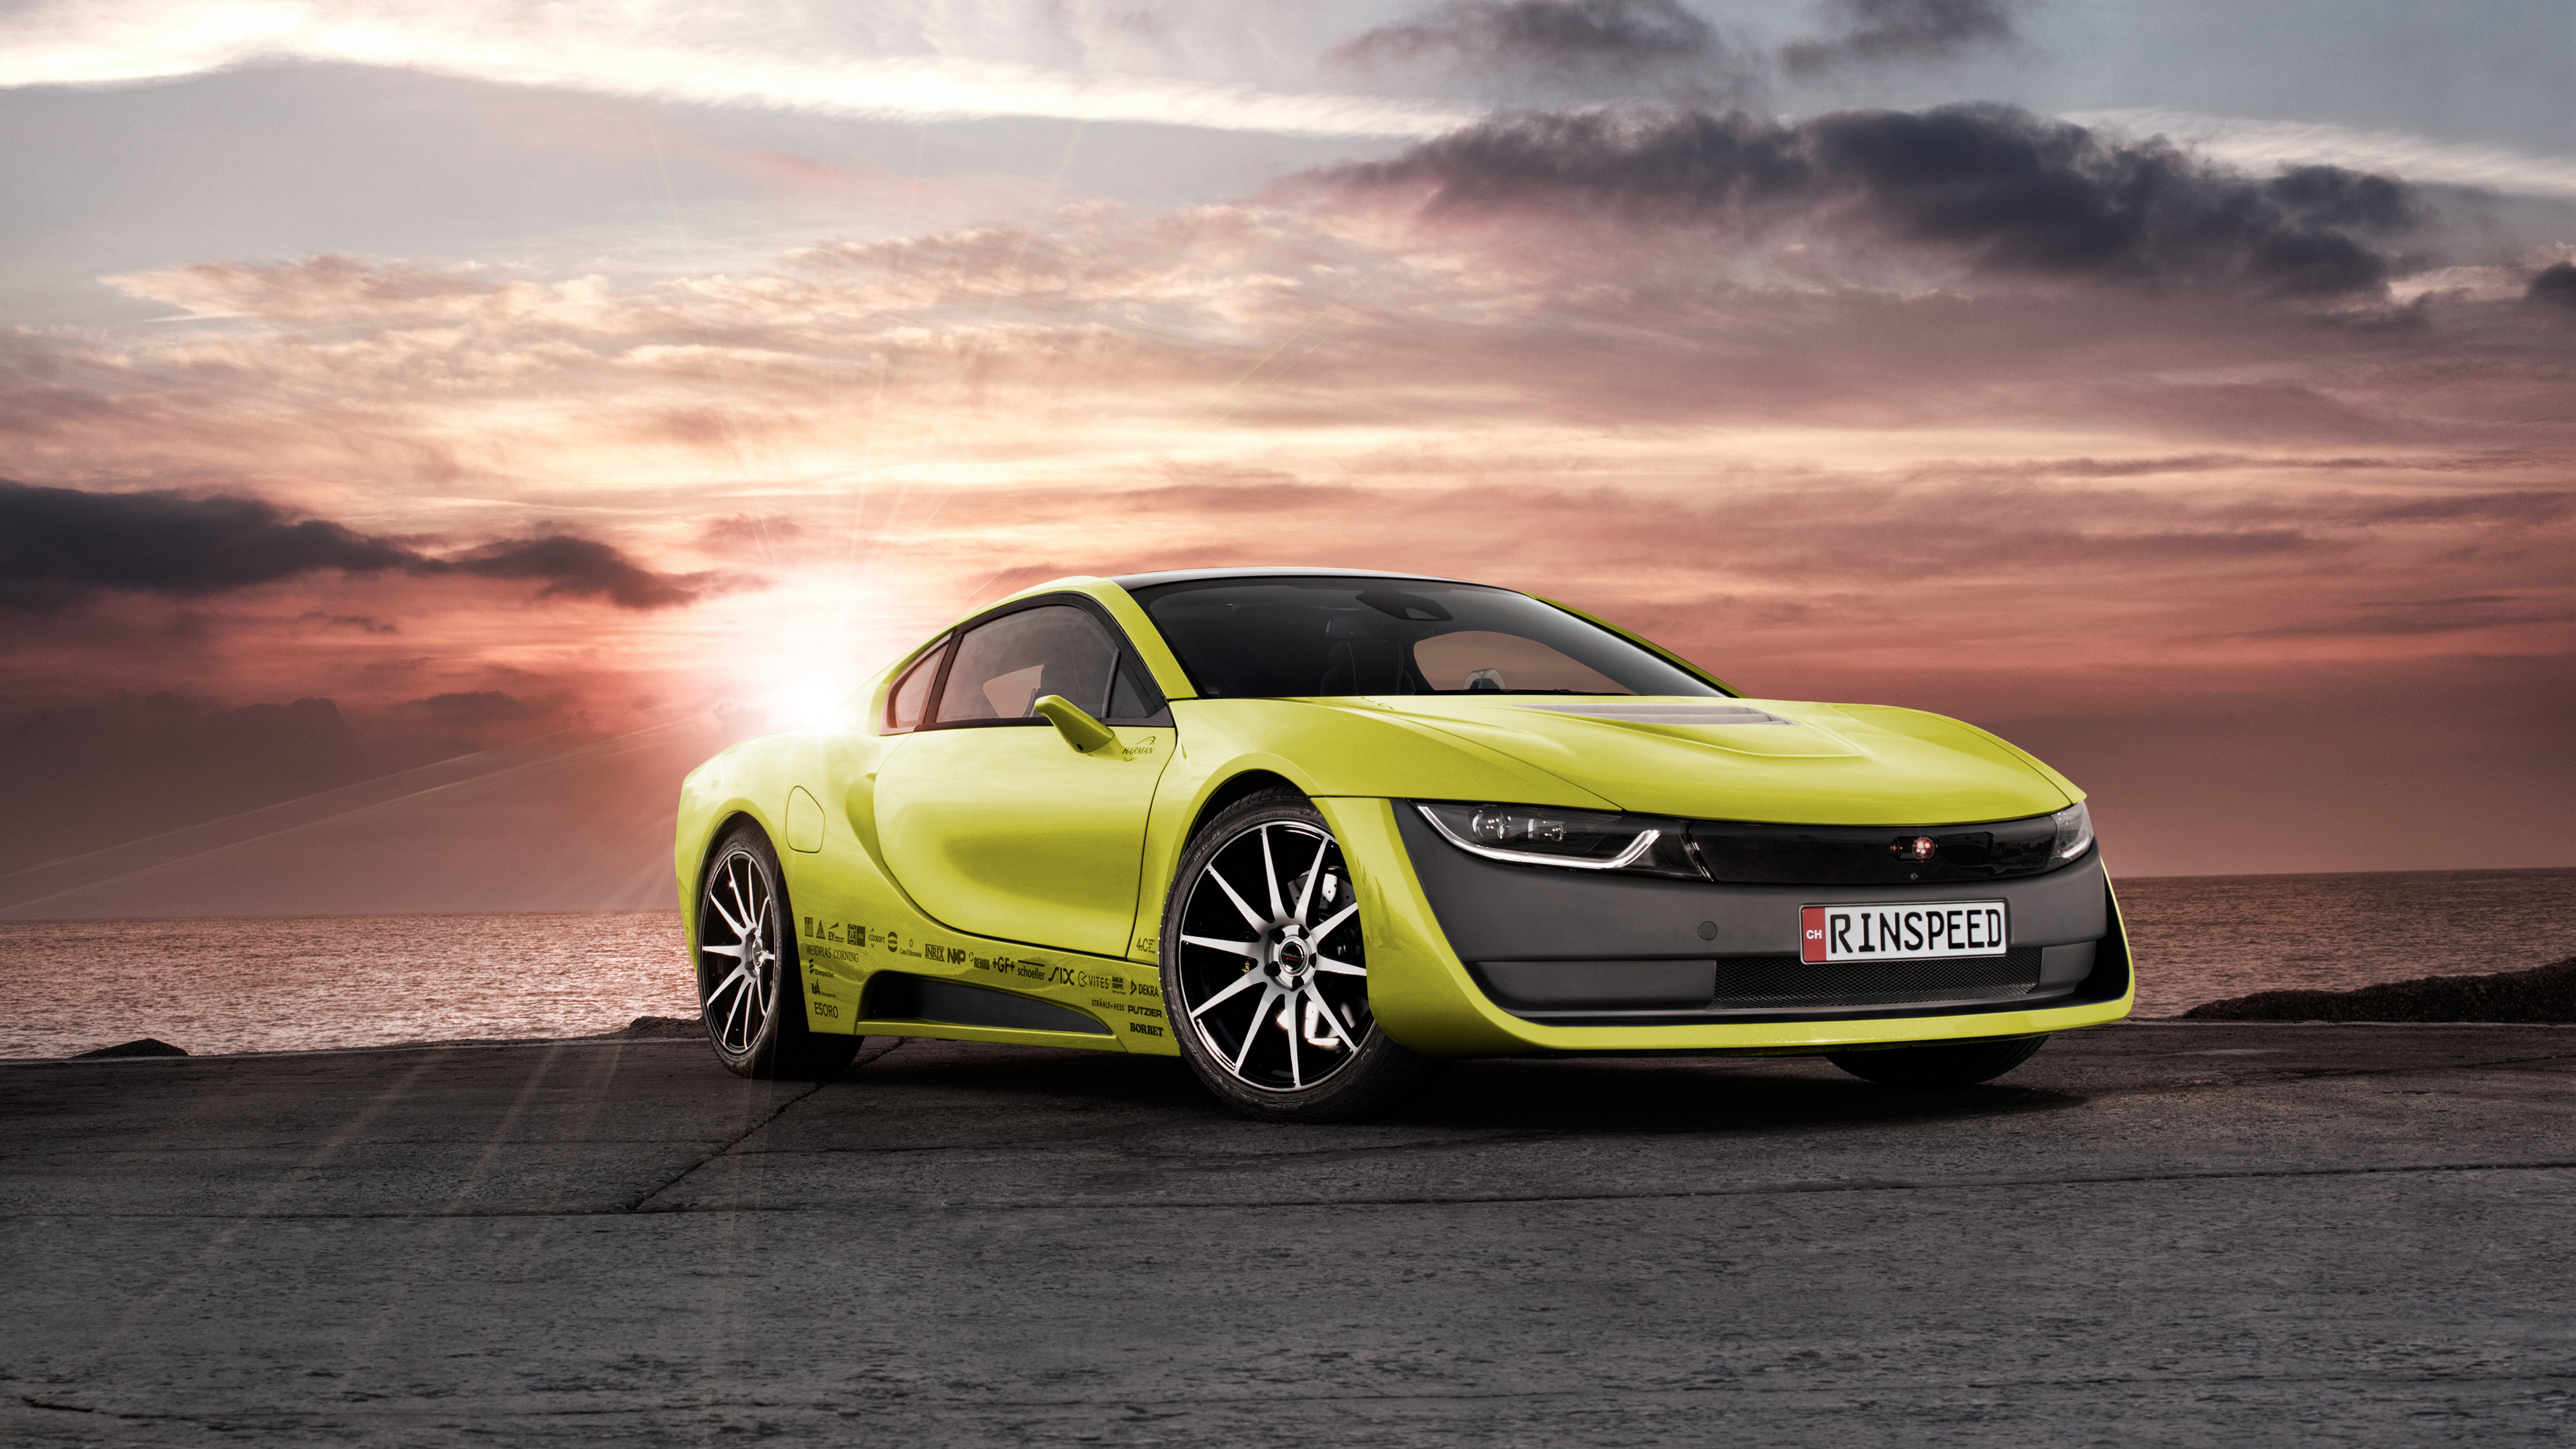 Rinspeed Etos BMW i8 Concept Wallpaper | HD Car Wallpapers ...